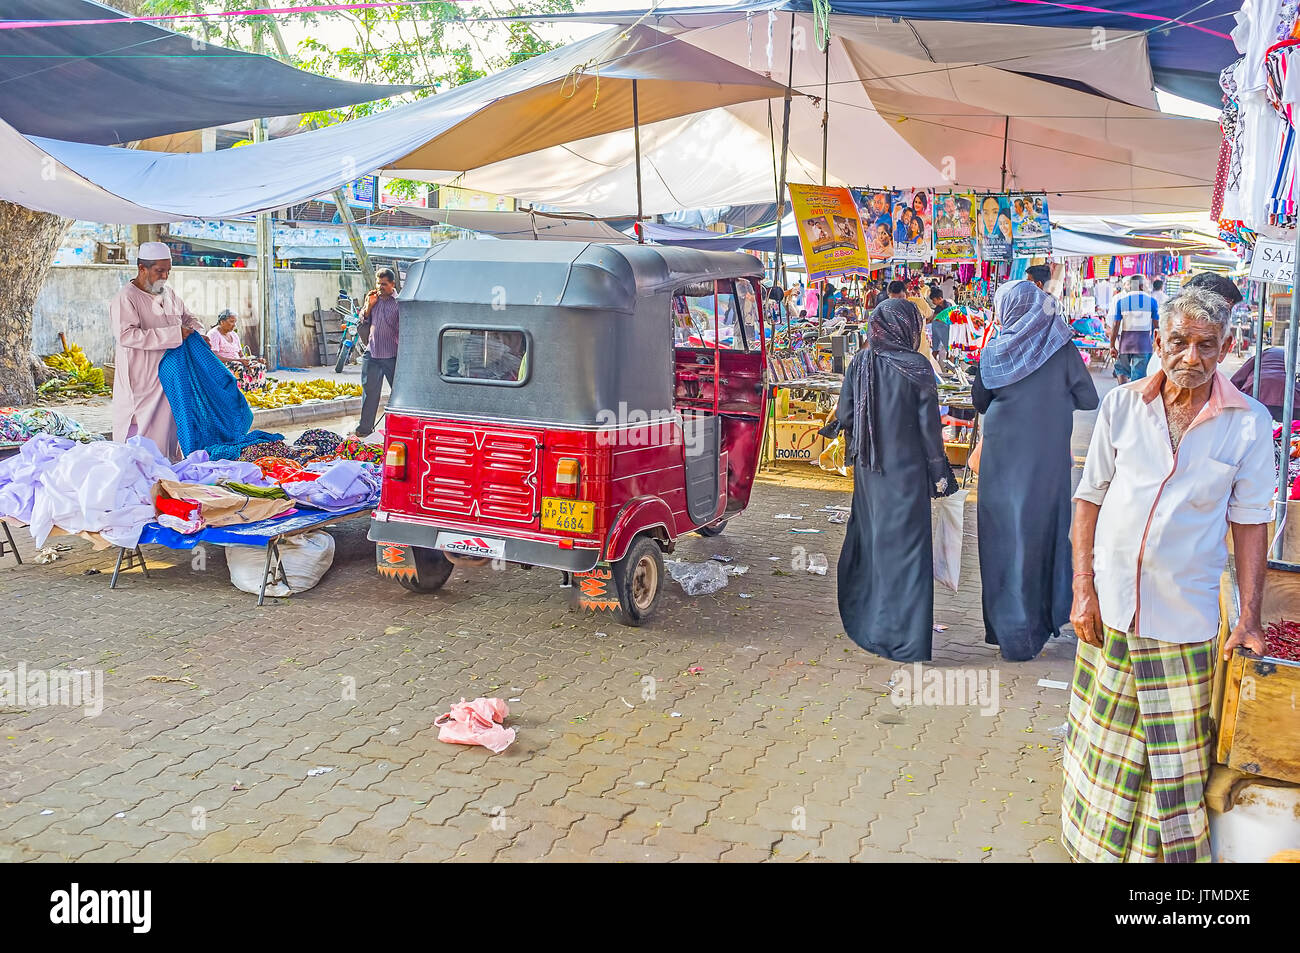 NEGOMBO, SRI LANKA - DECEMBER 7, 2016: The old clothes market in residential district of the city, tuk-tuk is parked Stock Photo